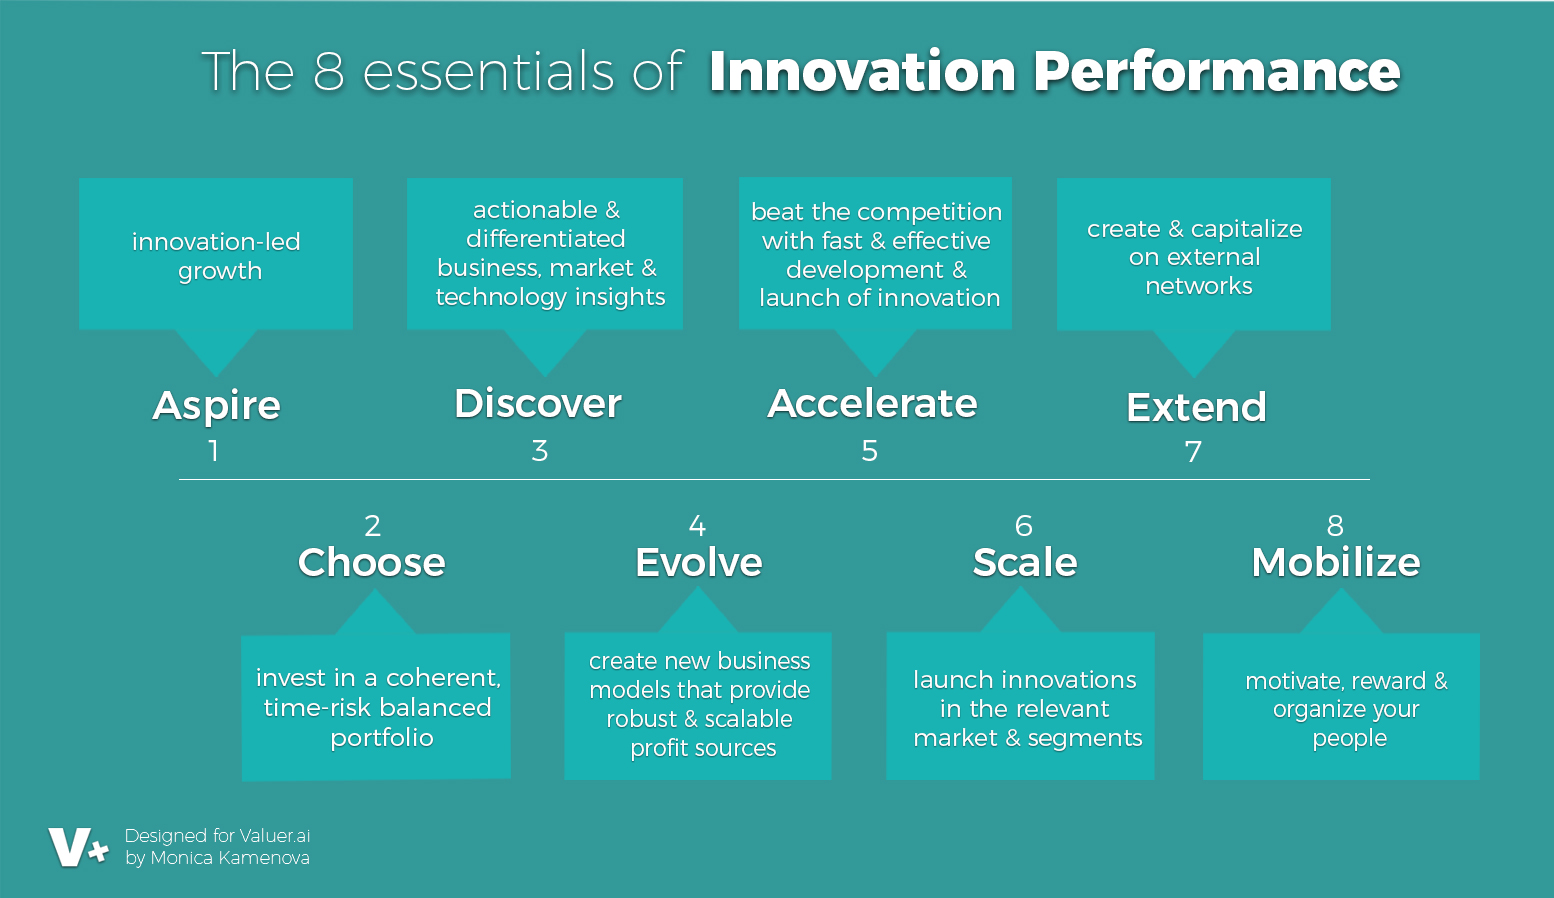 the 8 essentials of innovation performance infographic